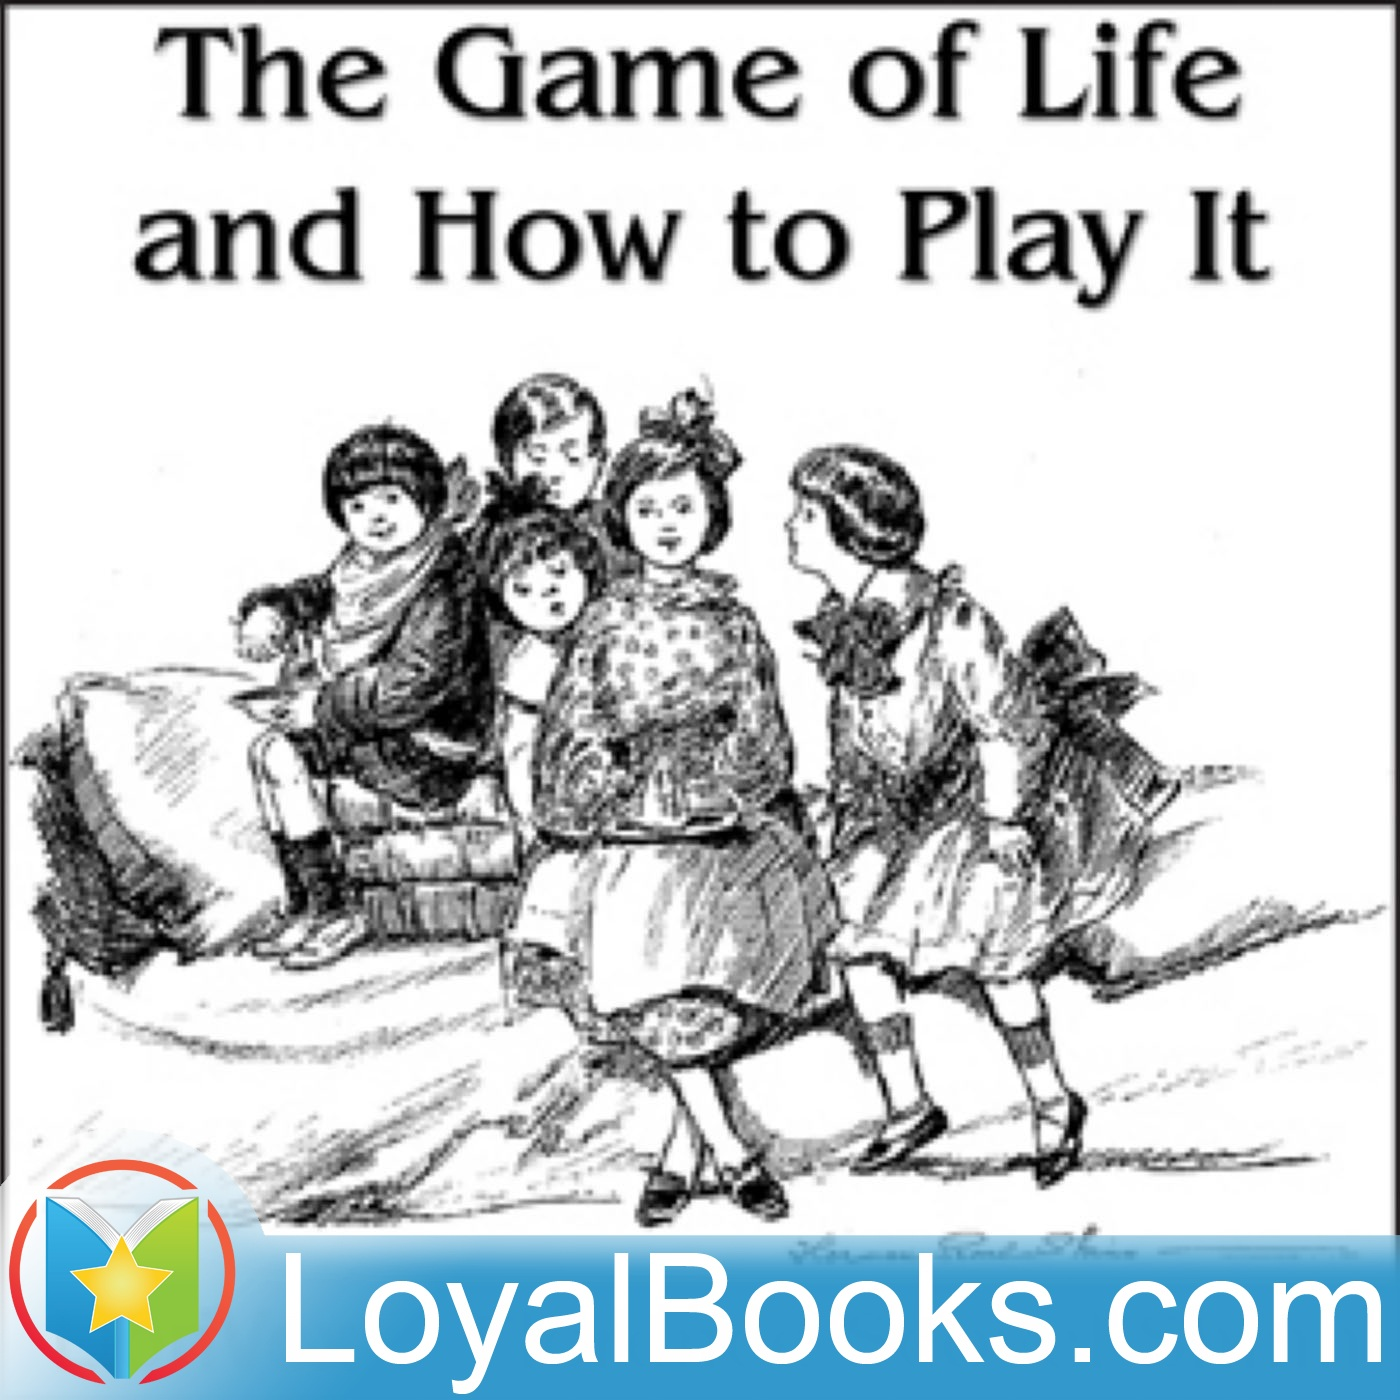 <![CDATA[The Game of Life and How to Play It by Florence Scovel Shinn]]>